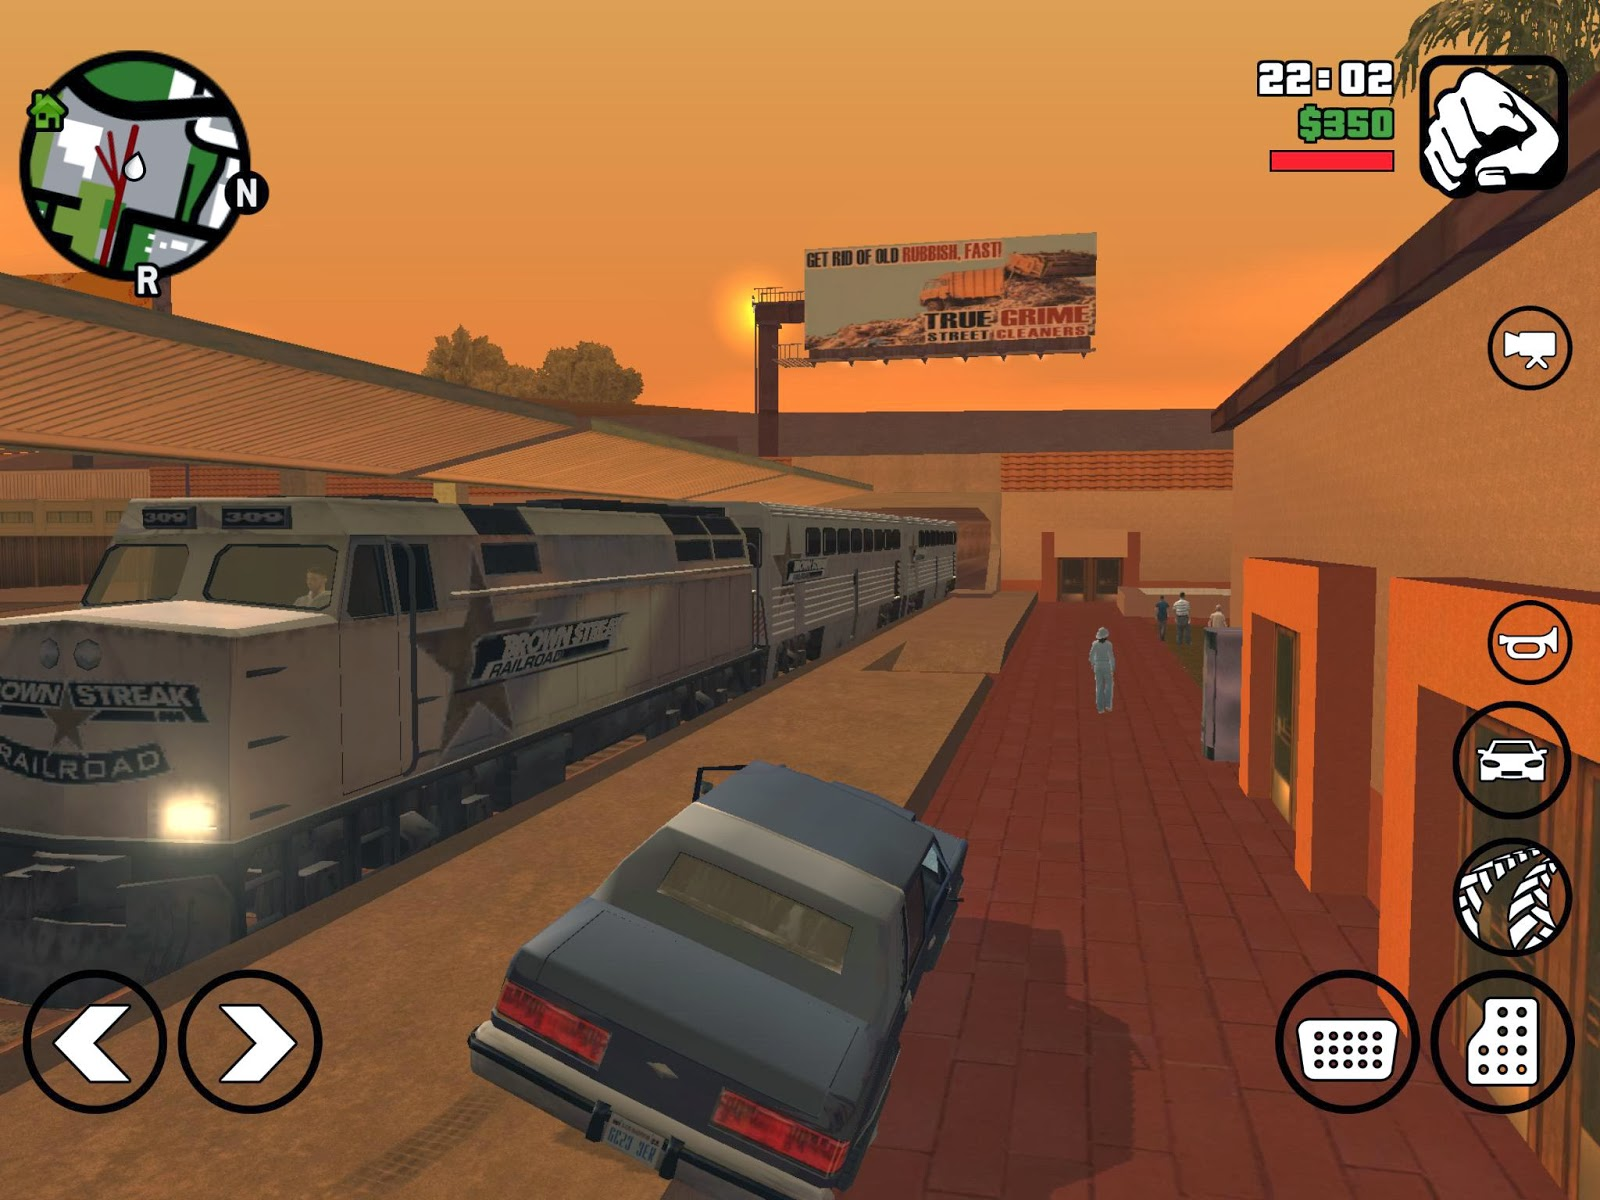 Gta san andreas cheats android apk